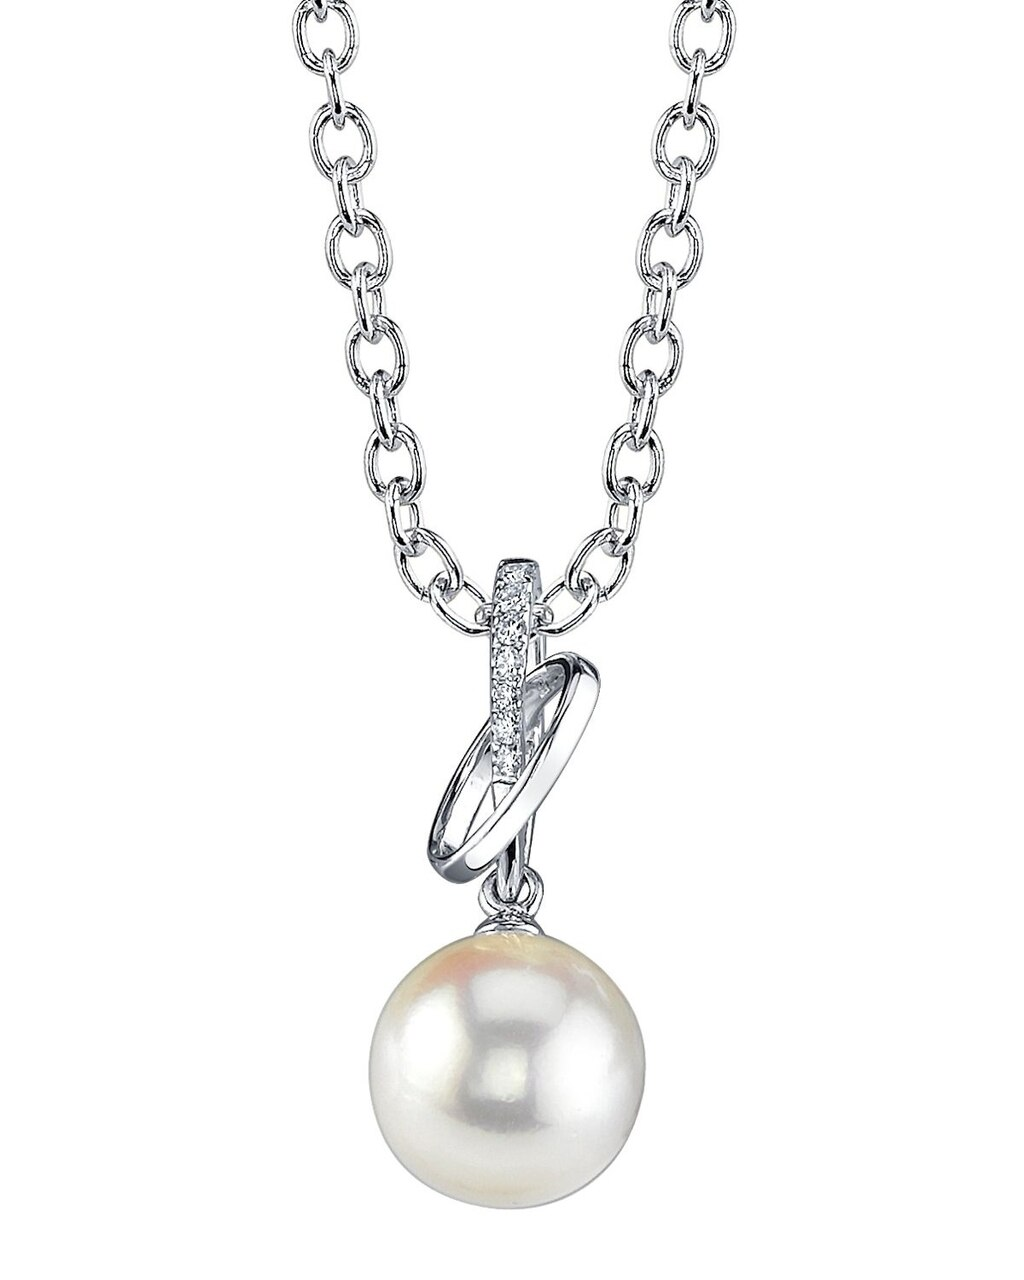 This exquisite pendant features an 8.0-9.0mm White South Sea Pearl, handpicked for its luminous luster